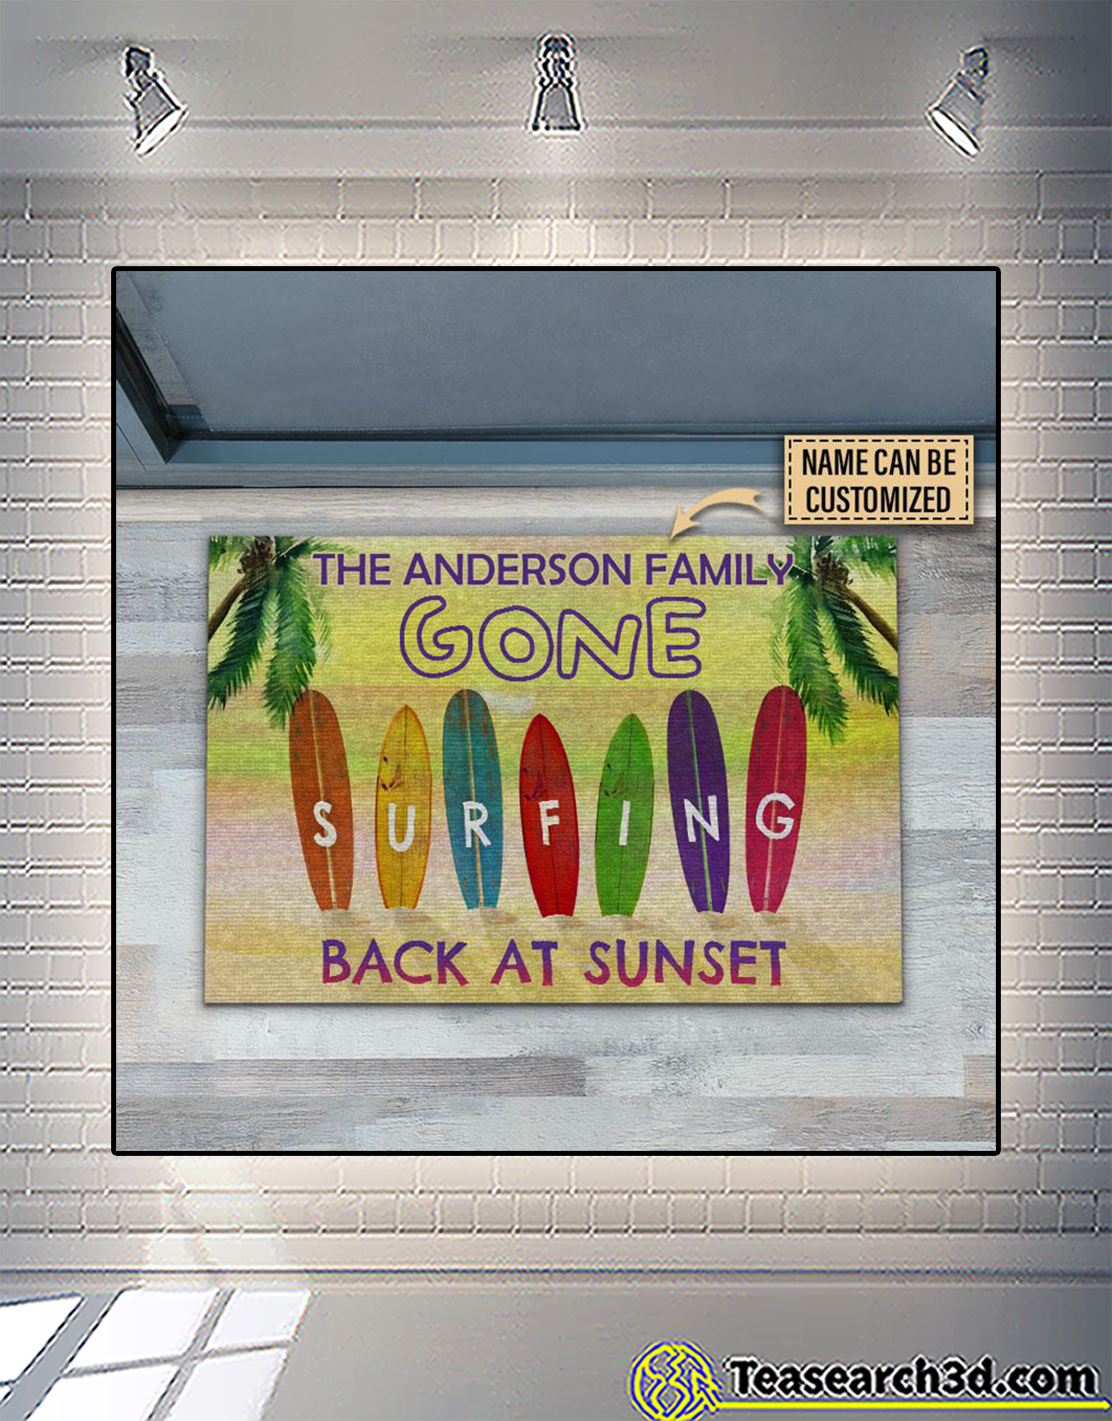 Personalized surfing back at sunset customized doormat 2